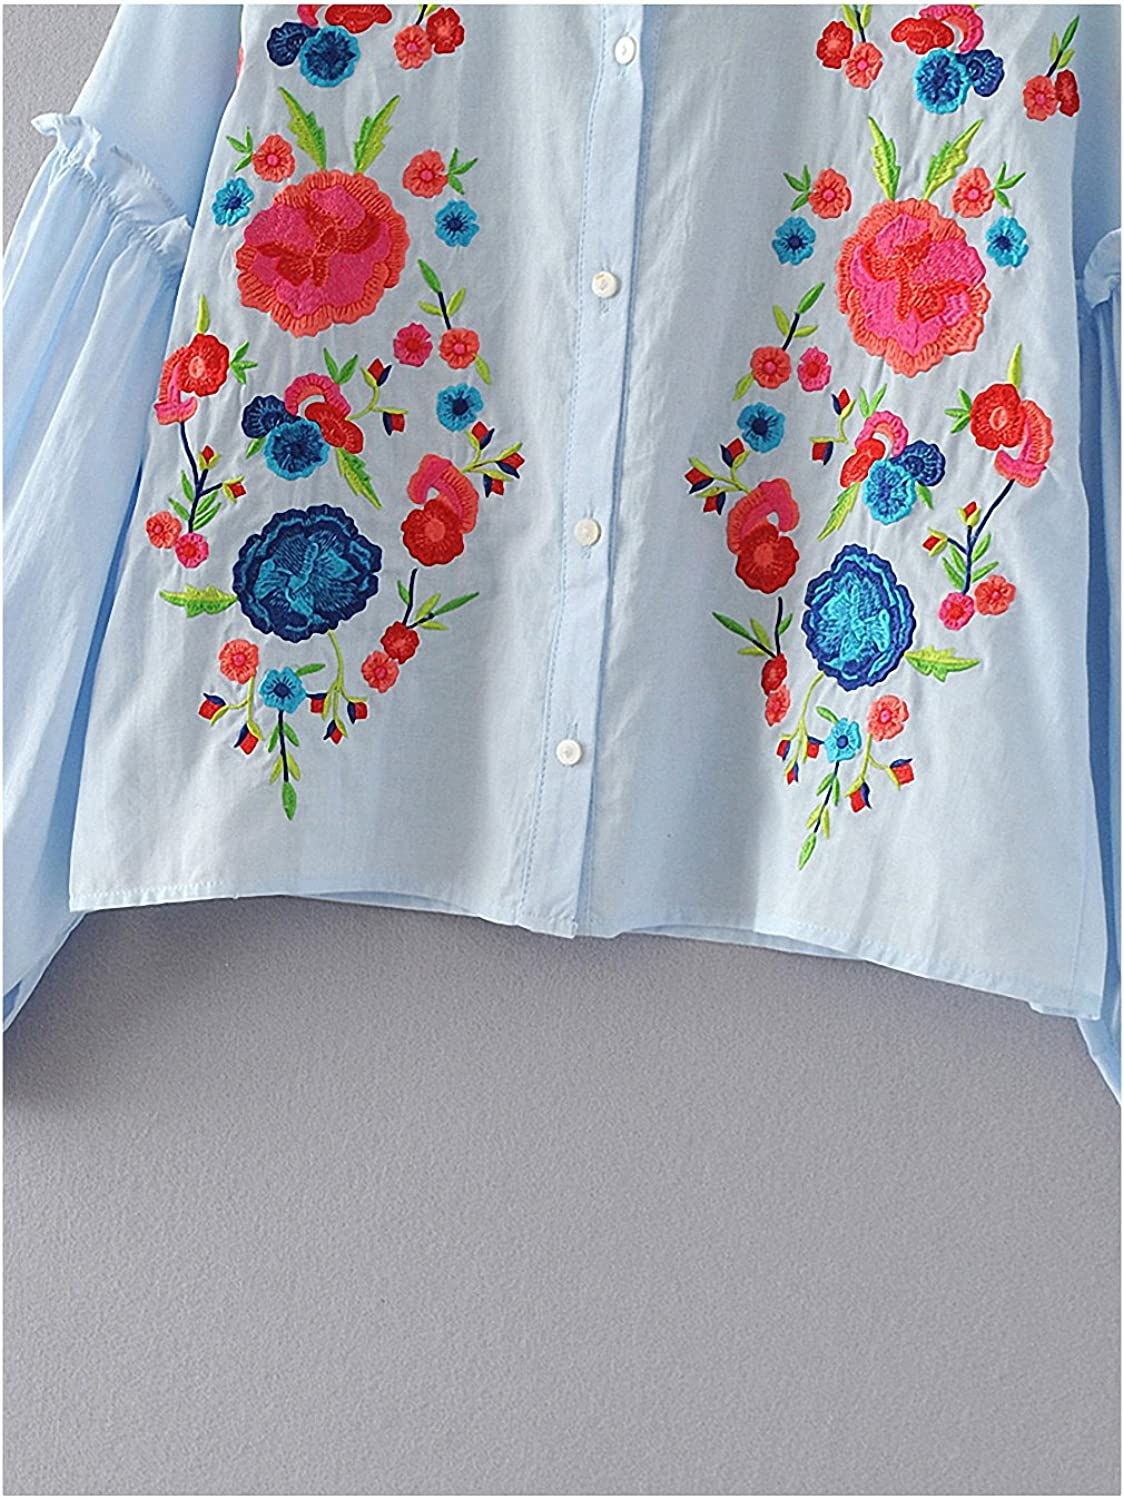 NEW Spring Autumn Women Shirts Blouses Plus Size Long Sleeve Floral Embroidery Korean Office Style Blouse Blusas Mujer at Amazon Womens Clothing store: